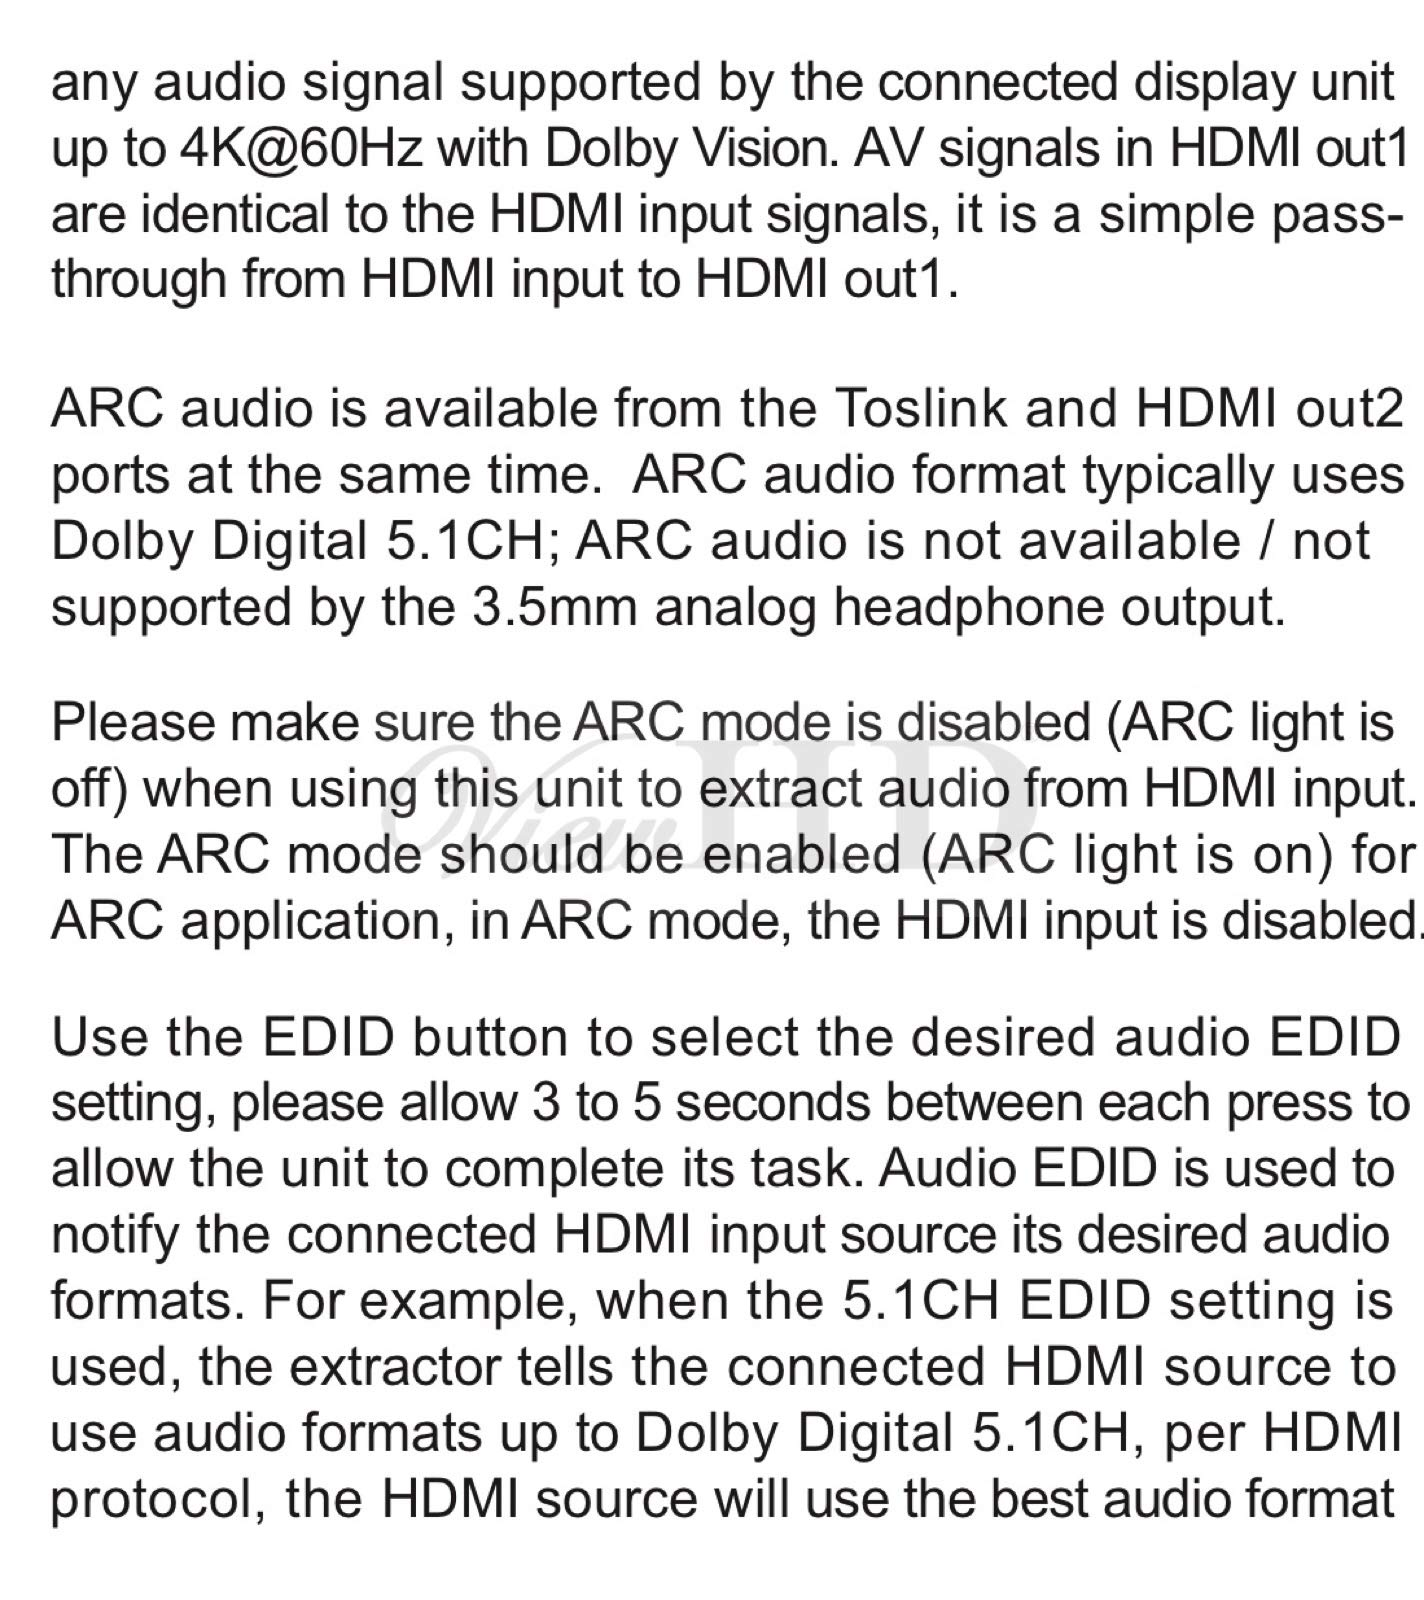 ViewHD UHD 18G HDMI Audio Extractor/Splitter Support HDMI v2.0 | HDCP v2.2 | 4K@60Hz | HDR | ARC | 3.5MM Analog Audio Output | Toslink Optical Audio Output | HDMI Audio Output | Model: VHD-UHAE2 by ViewHD (Image #5)